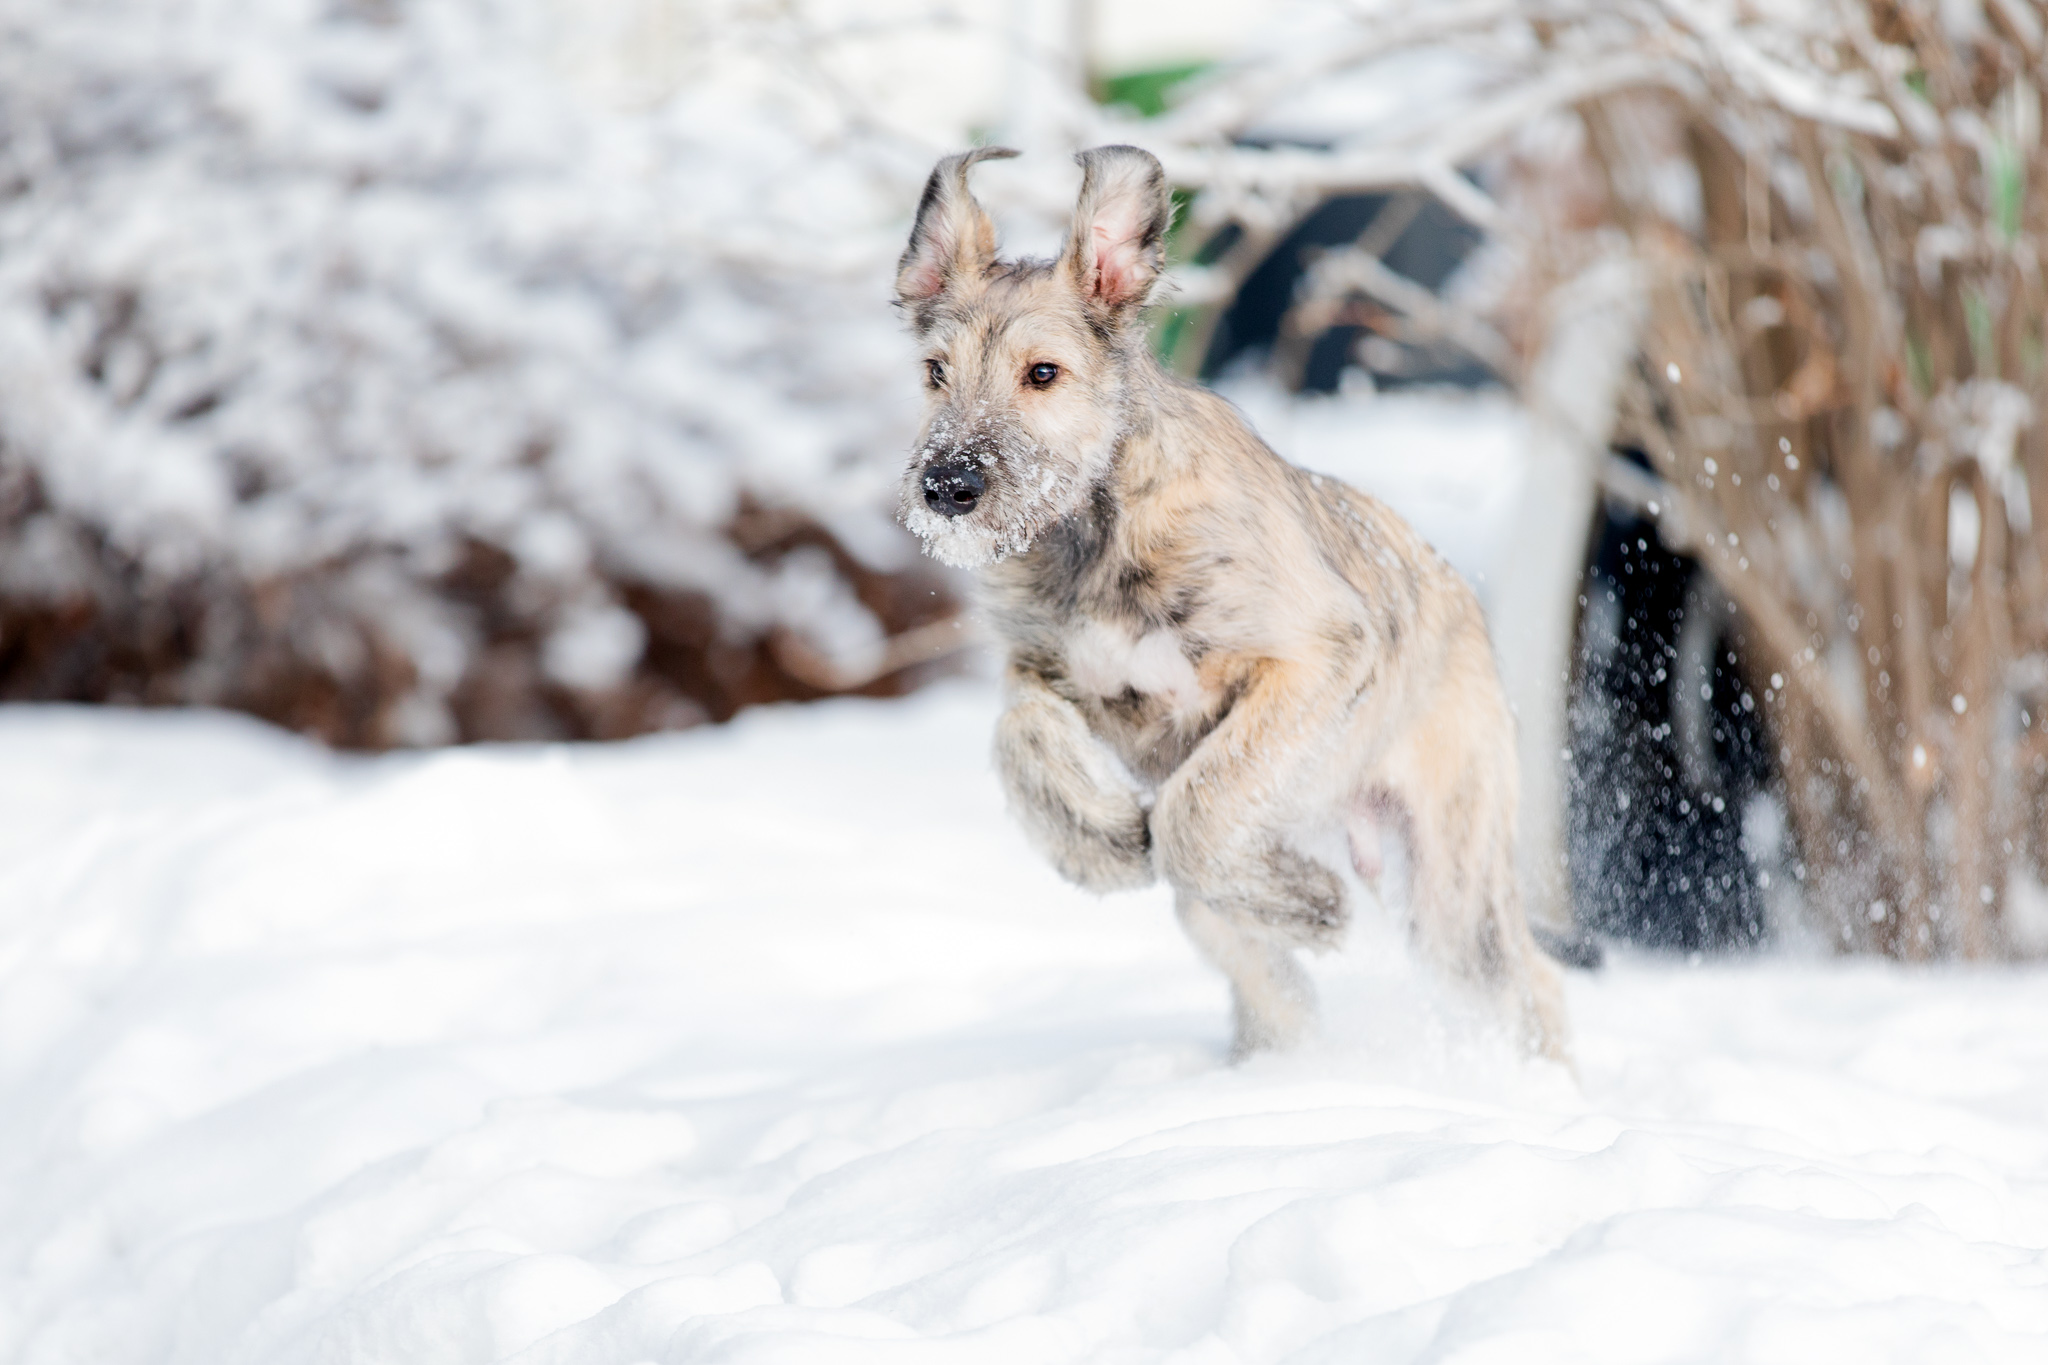 Puppy leaping in snow